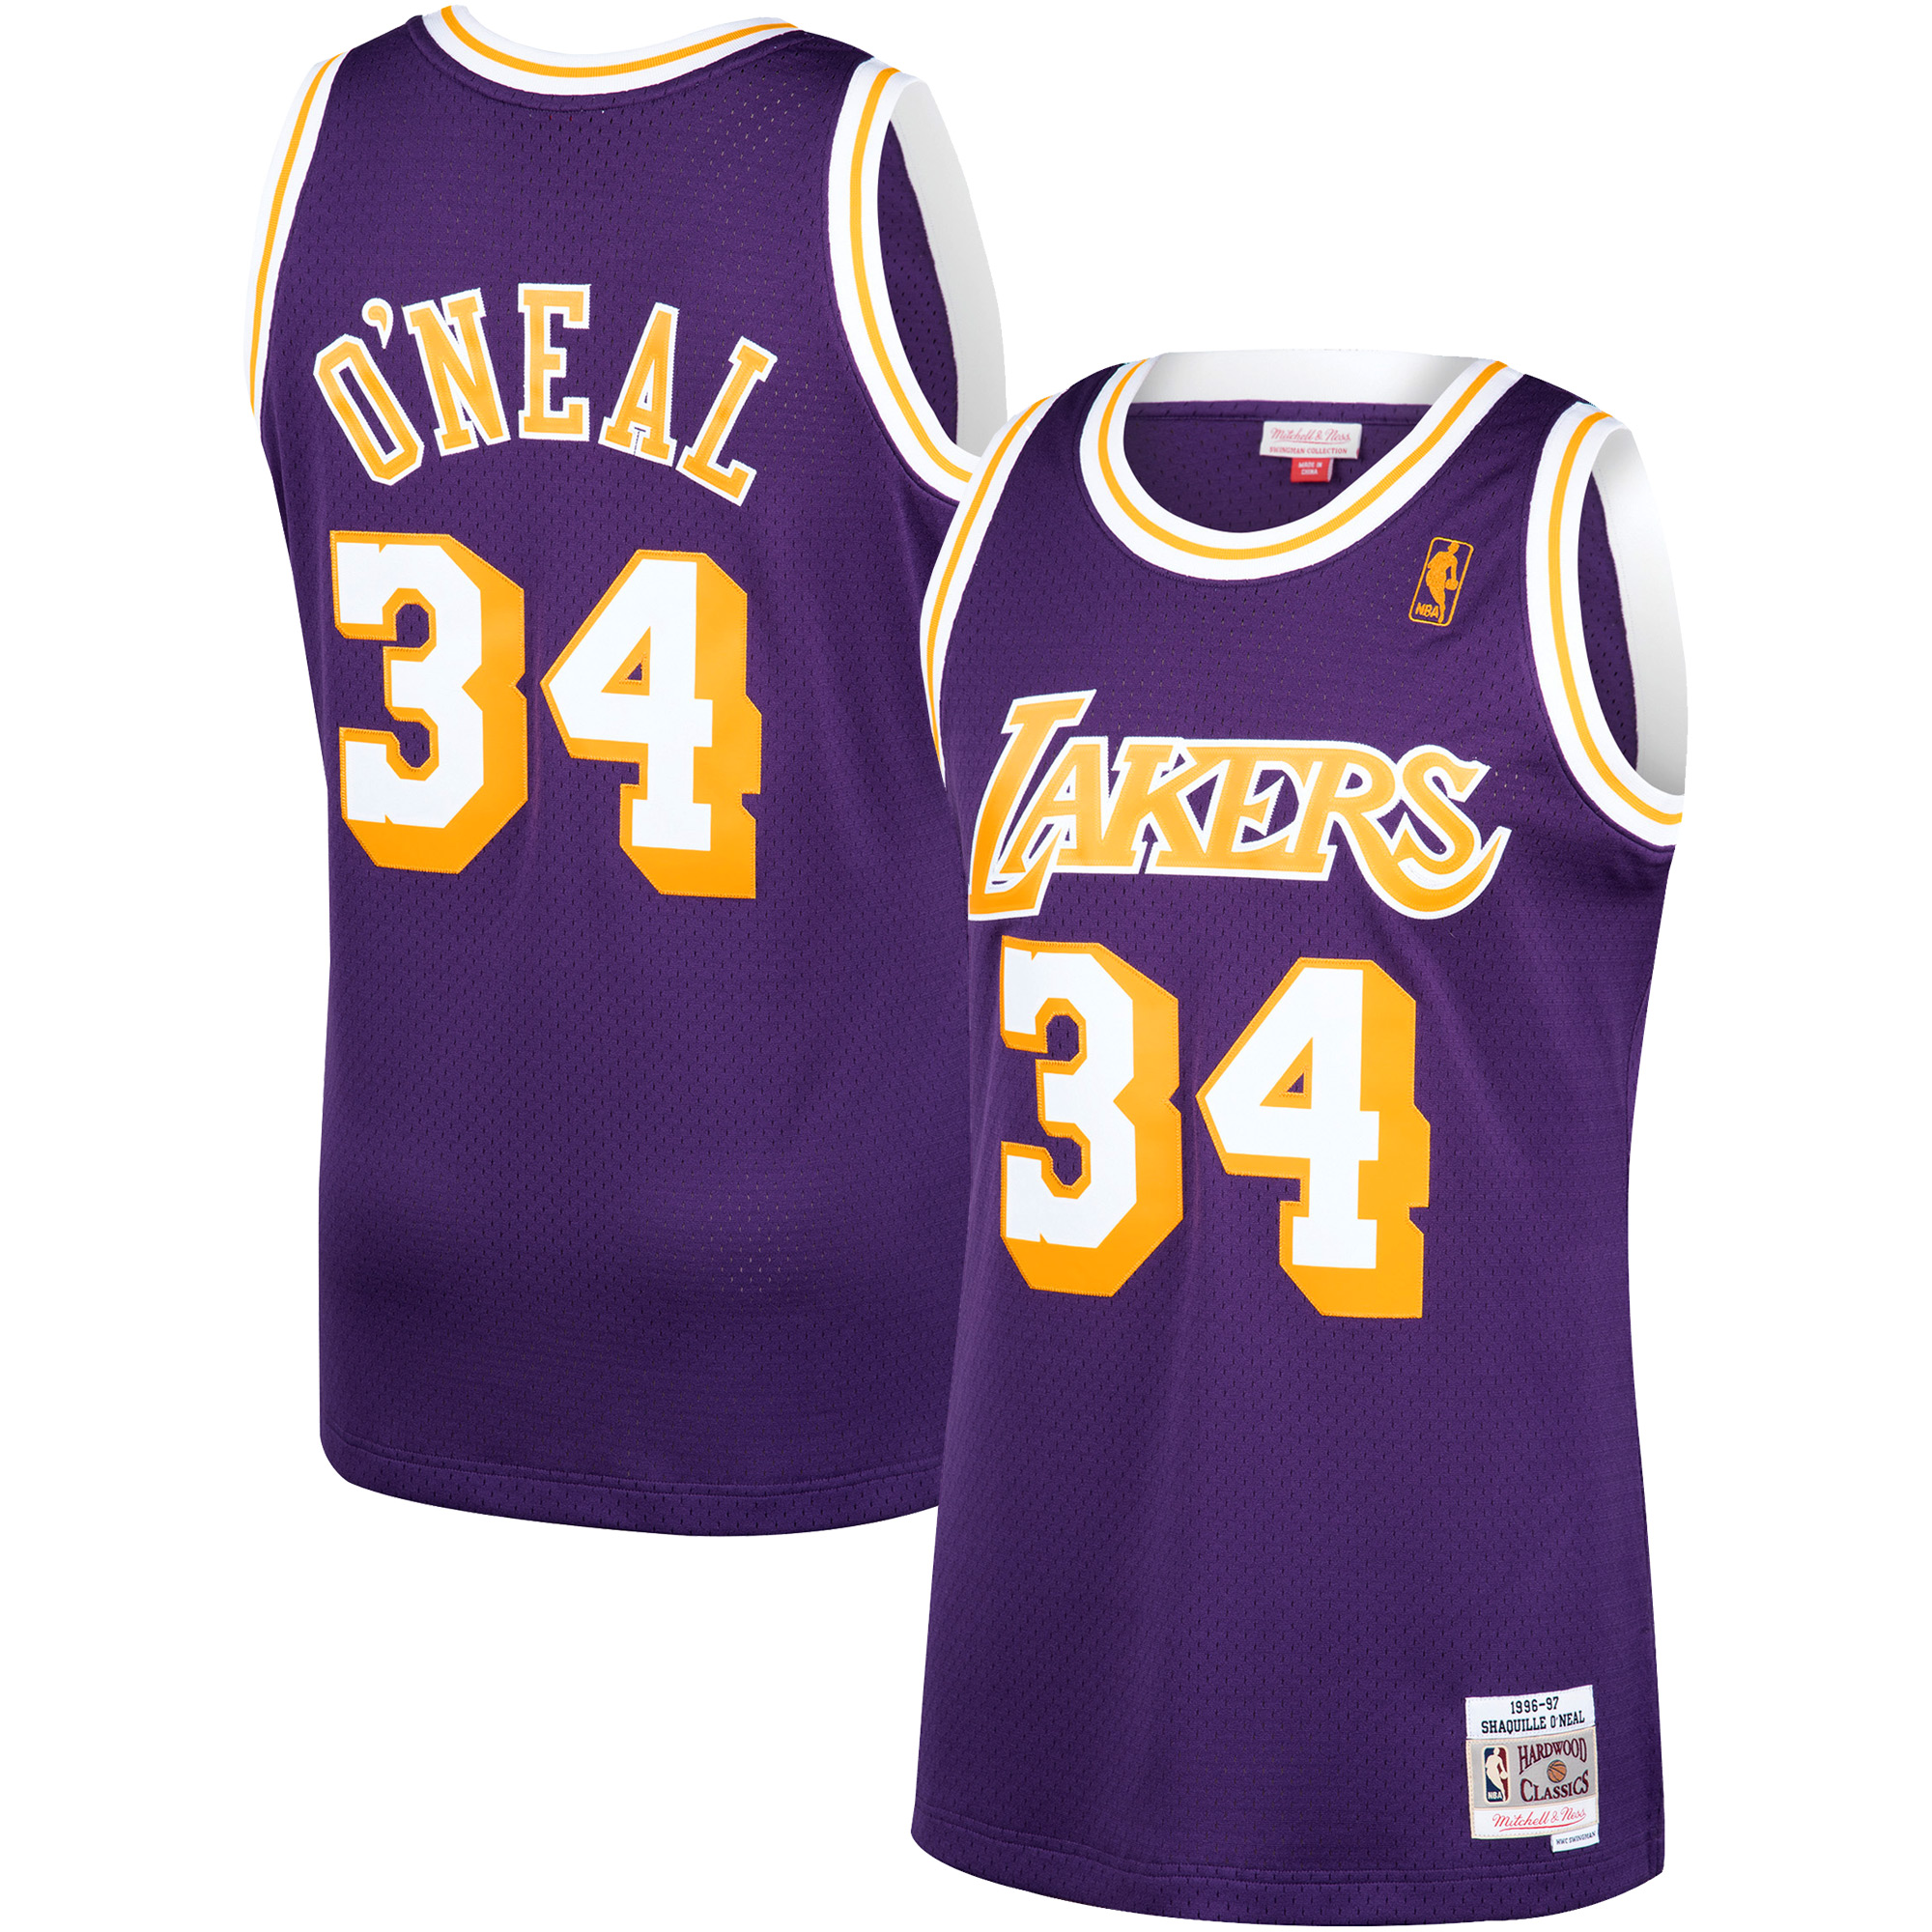 Shaquille O'Neal Los Angeles Lakers Mitchell & Ness 1996-97 Hardwood Classics Swingman Jersey - Purple